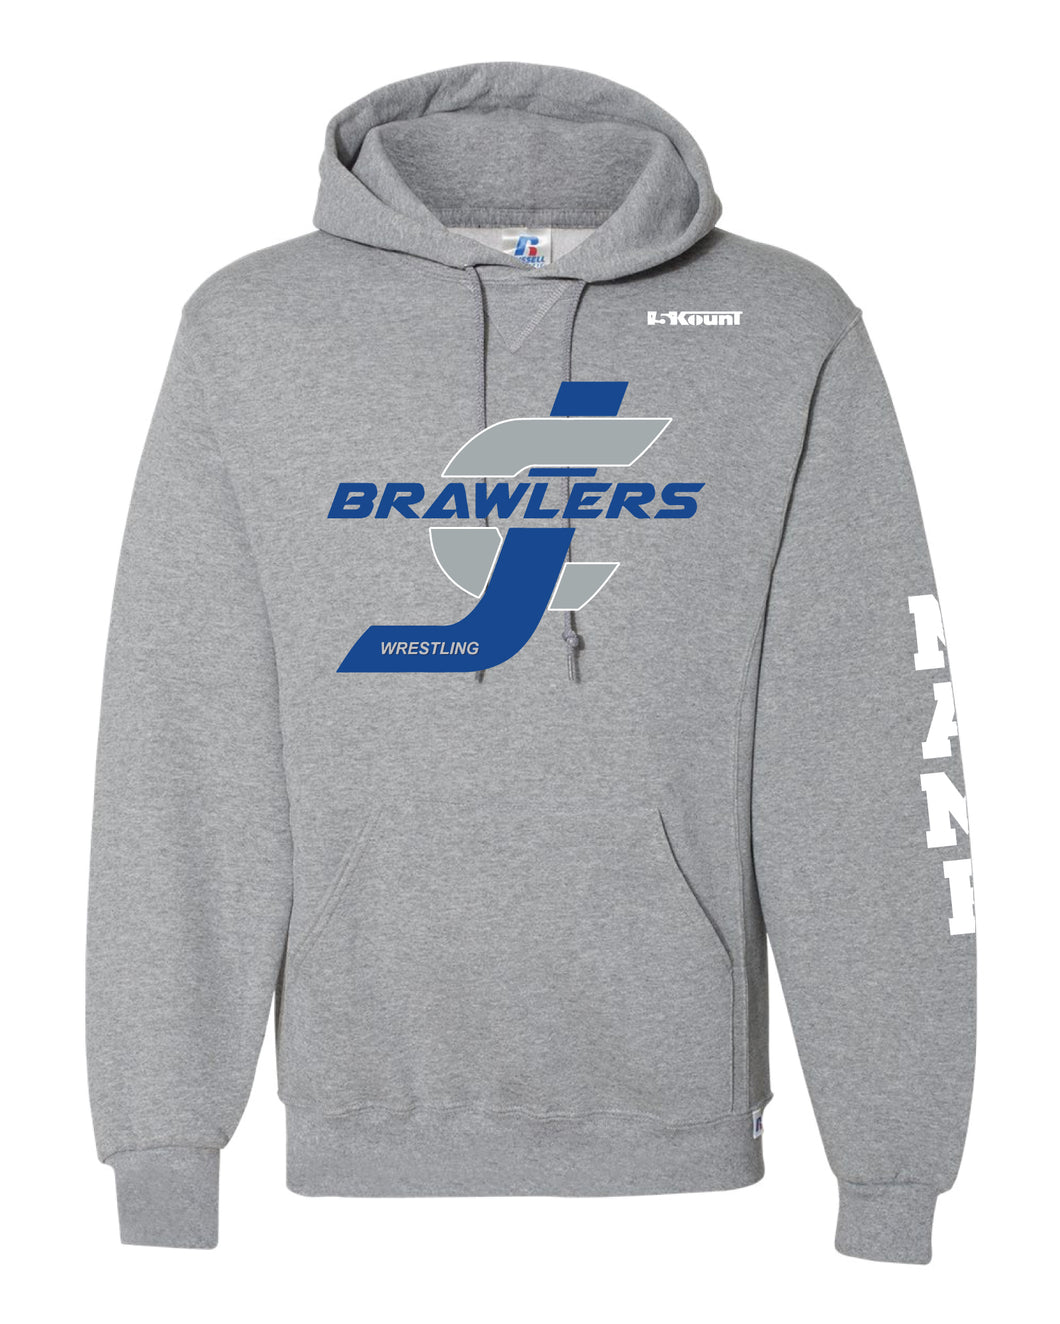 Brawlers Wrestling Russell Athletic Cotton Hoodie - Gray - 5KounT2018